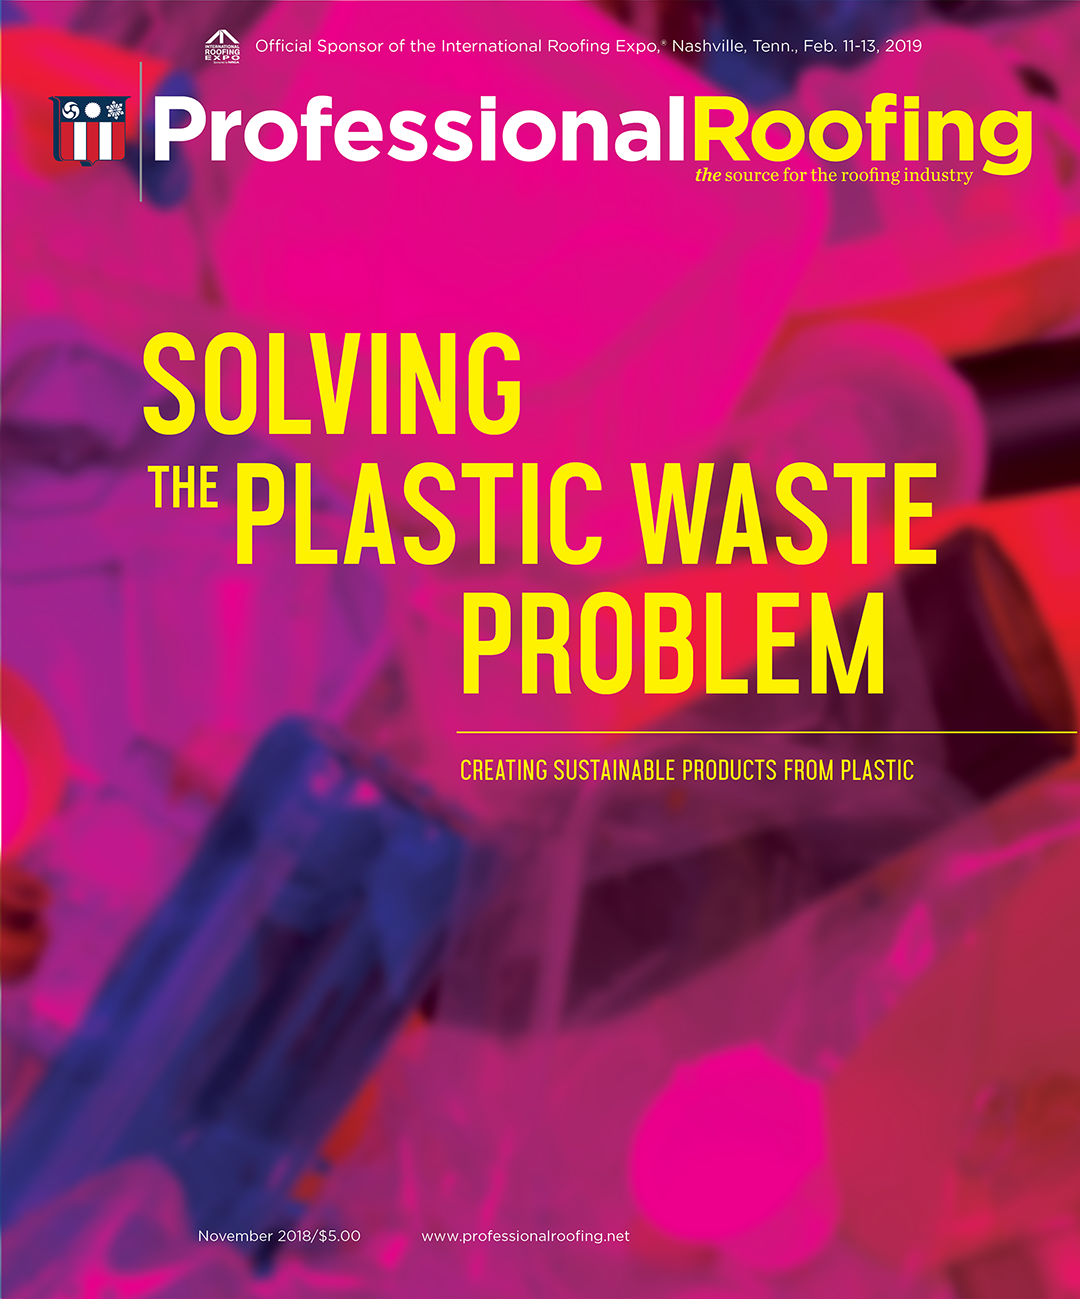 Professional Roofing Magazine 11/1/2018